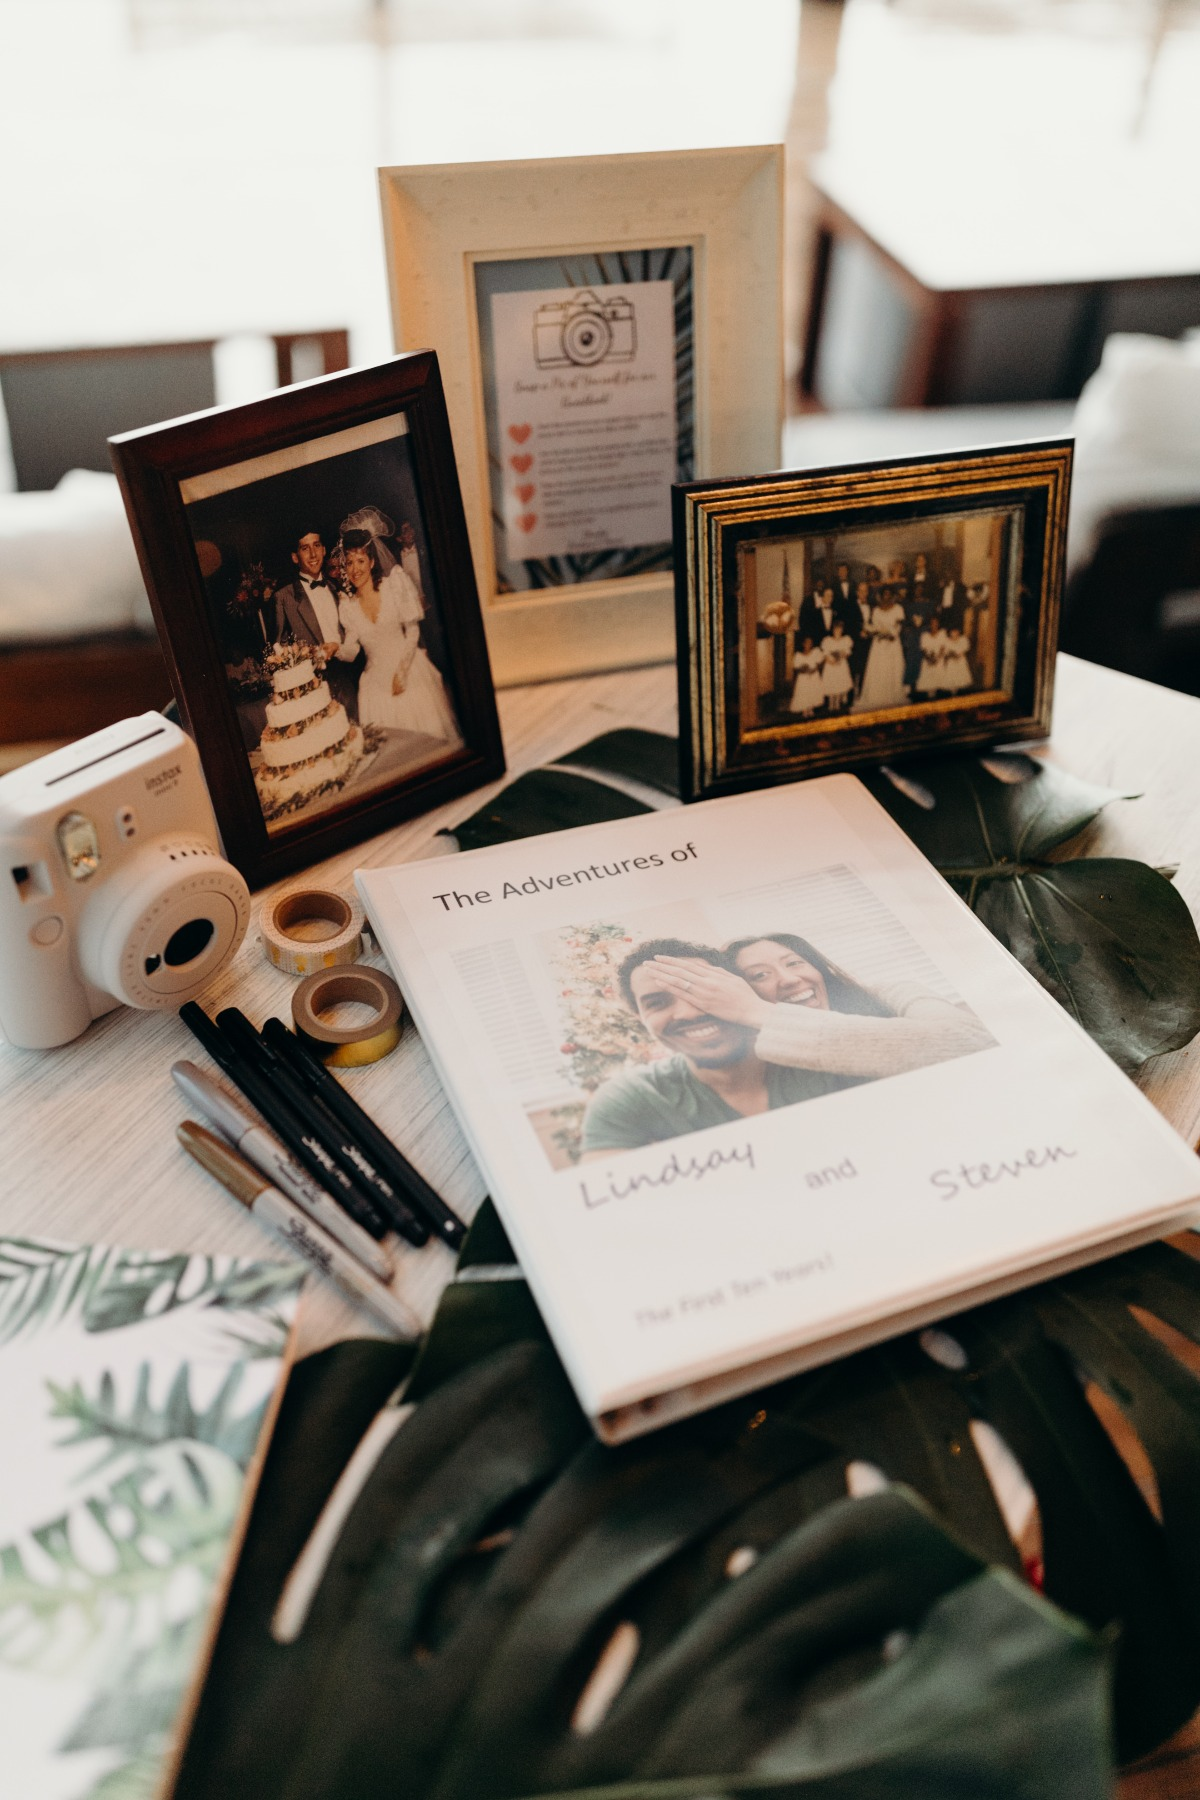 Guest book table with Instax camera and photo book to sign